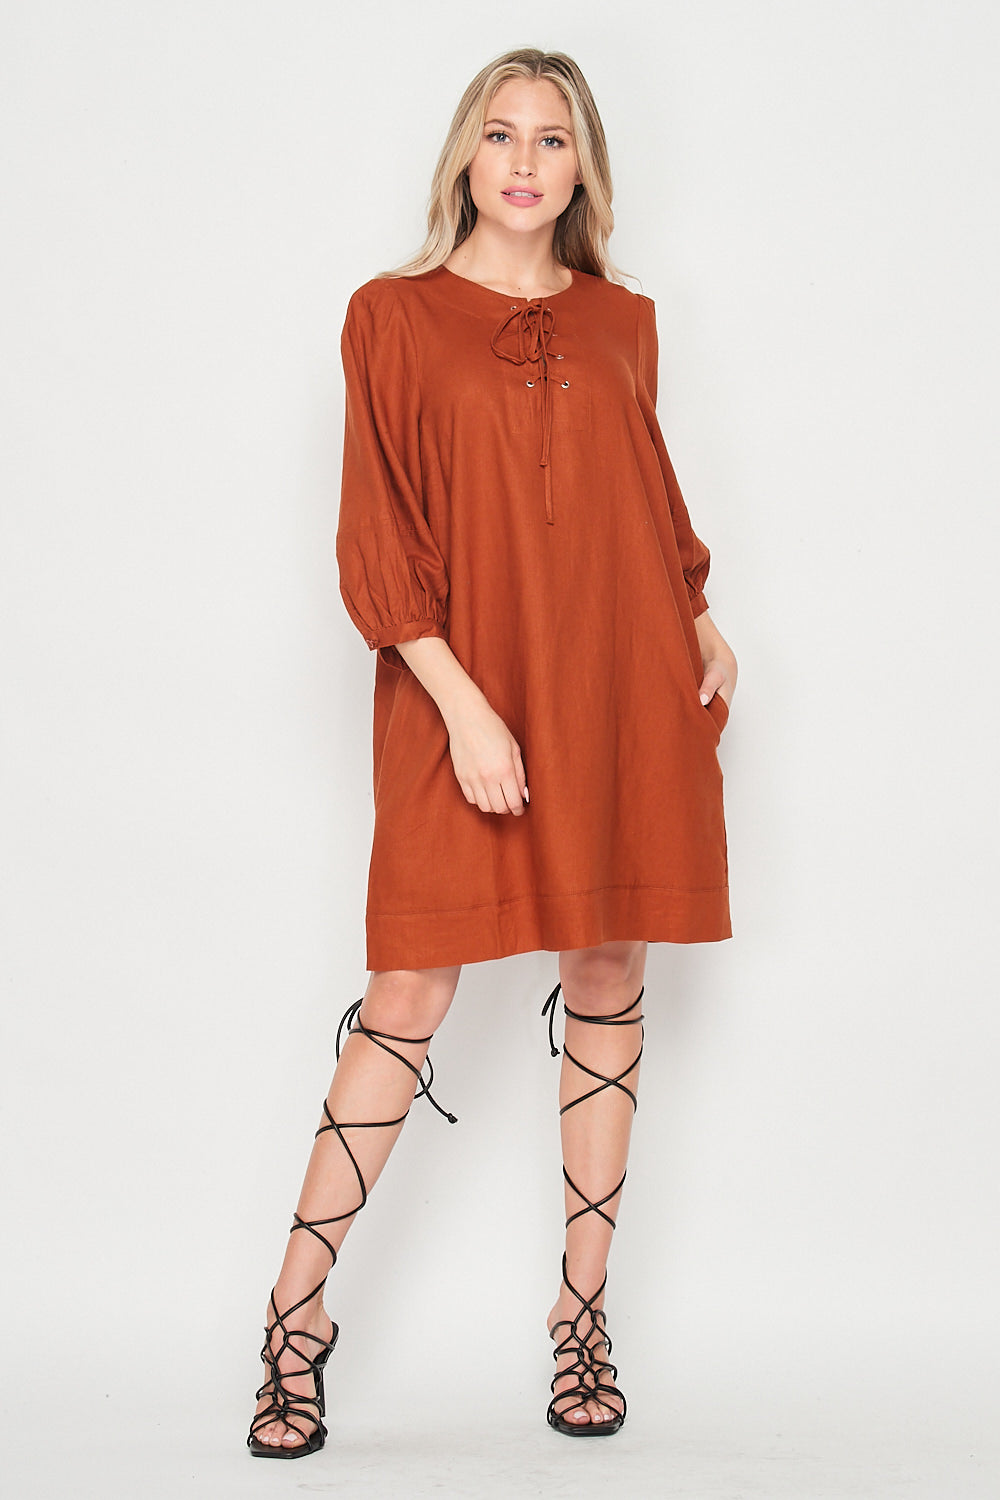 Blank Lewks | City Girl Linen Shift Dress With Puffy Sleeves | Rust